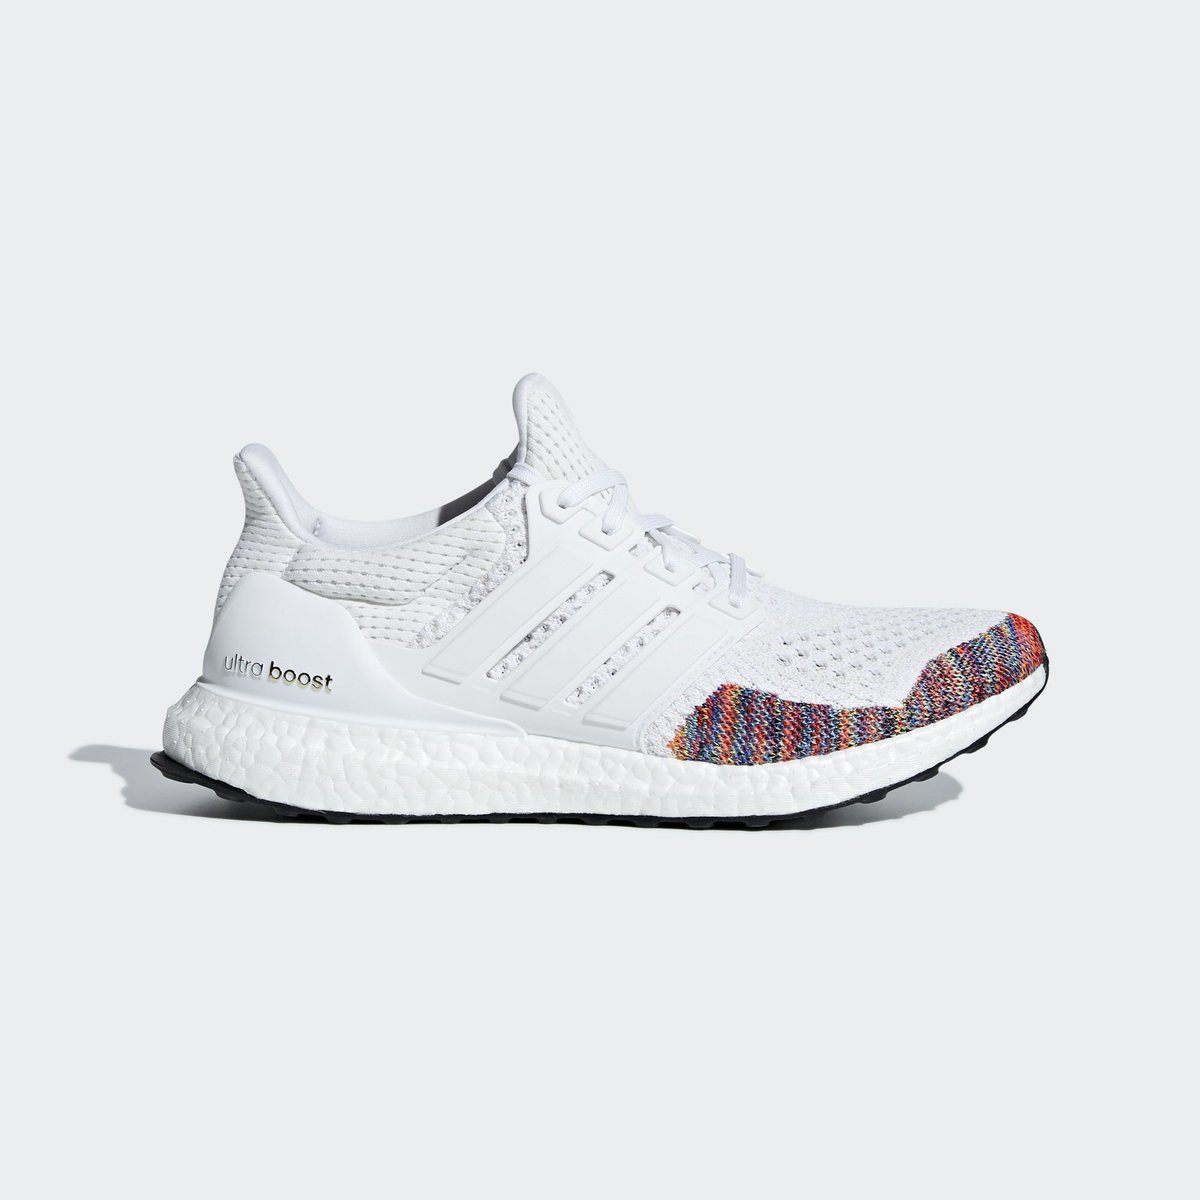 5e423c16b276c Sizes restocked on  adidas US. adidas Ultra Boost 1.0 Multicolor. —   http   bit.ly 2CsCiq6 pic.twitter.com hsQG5zq0av